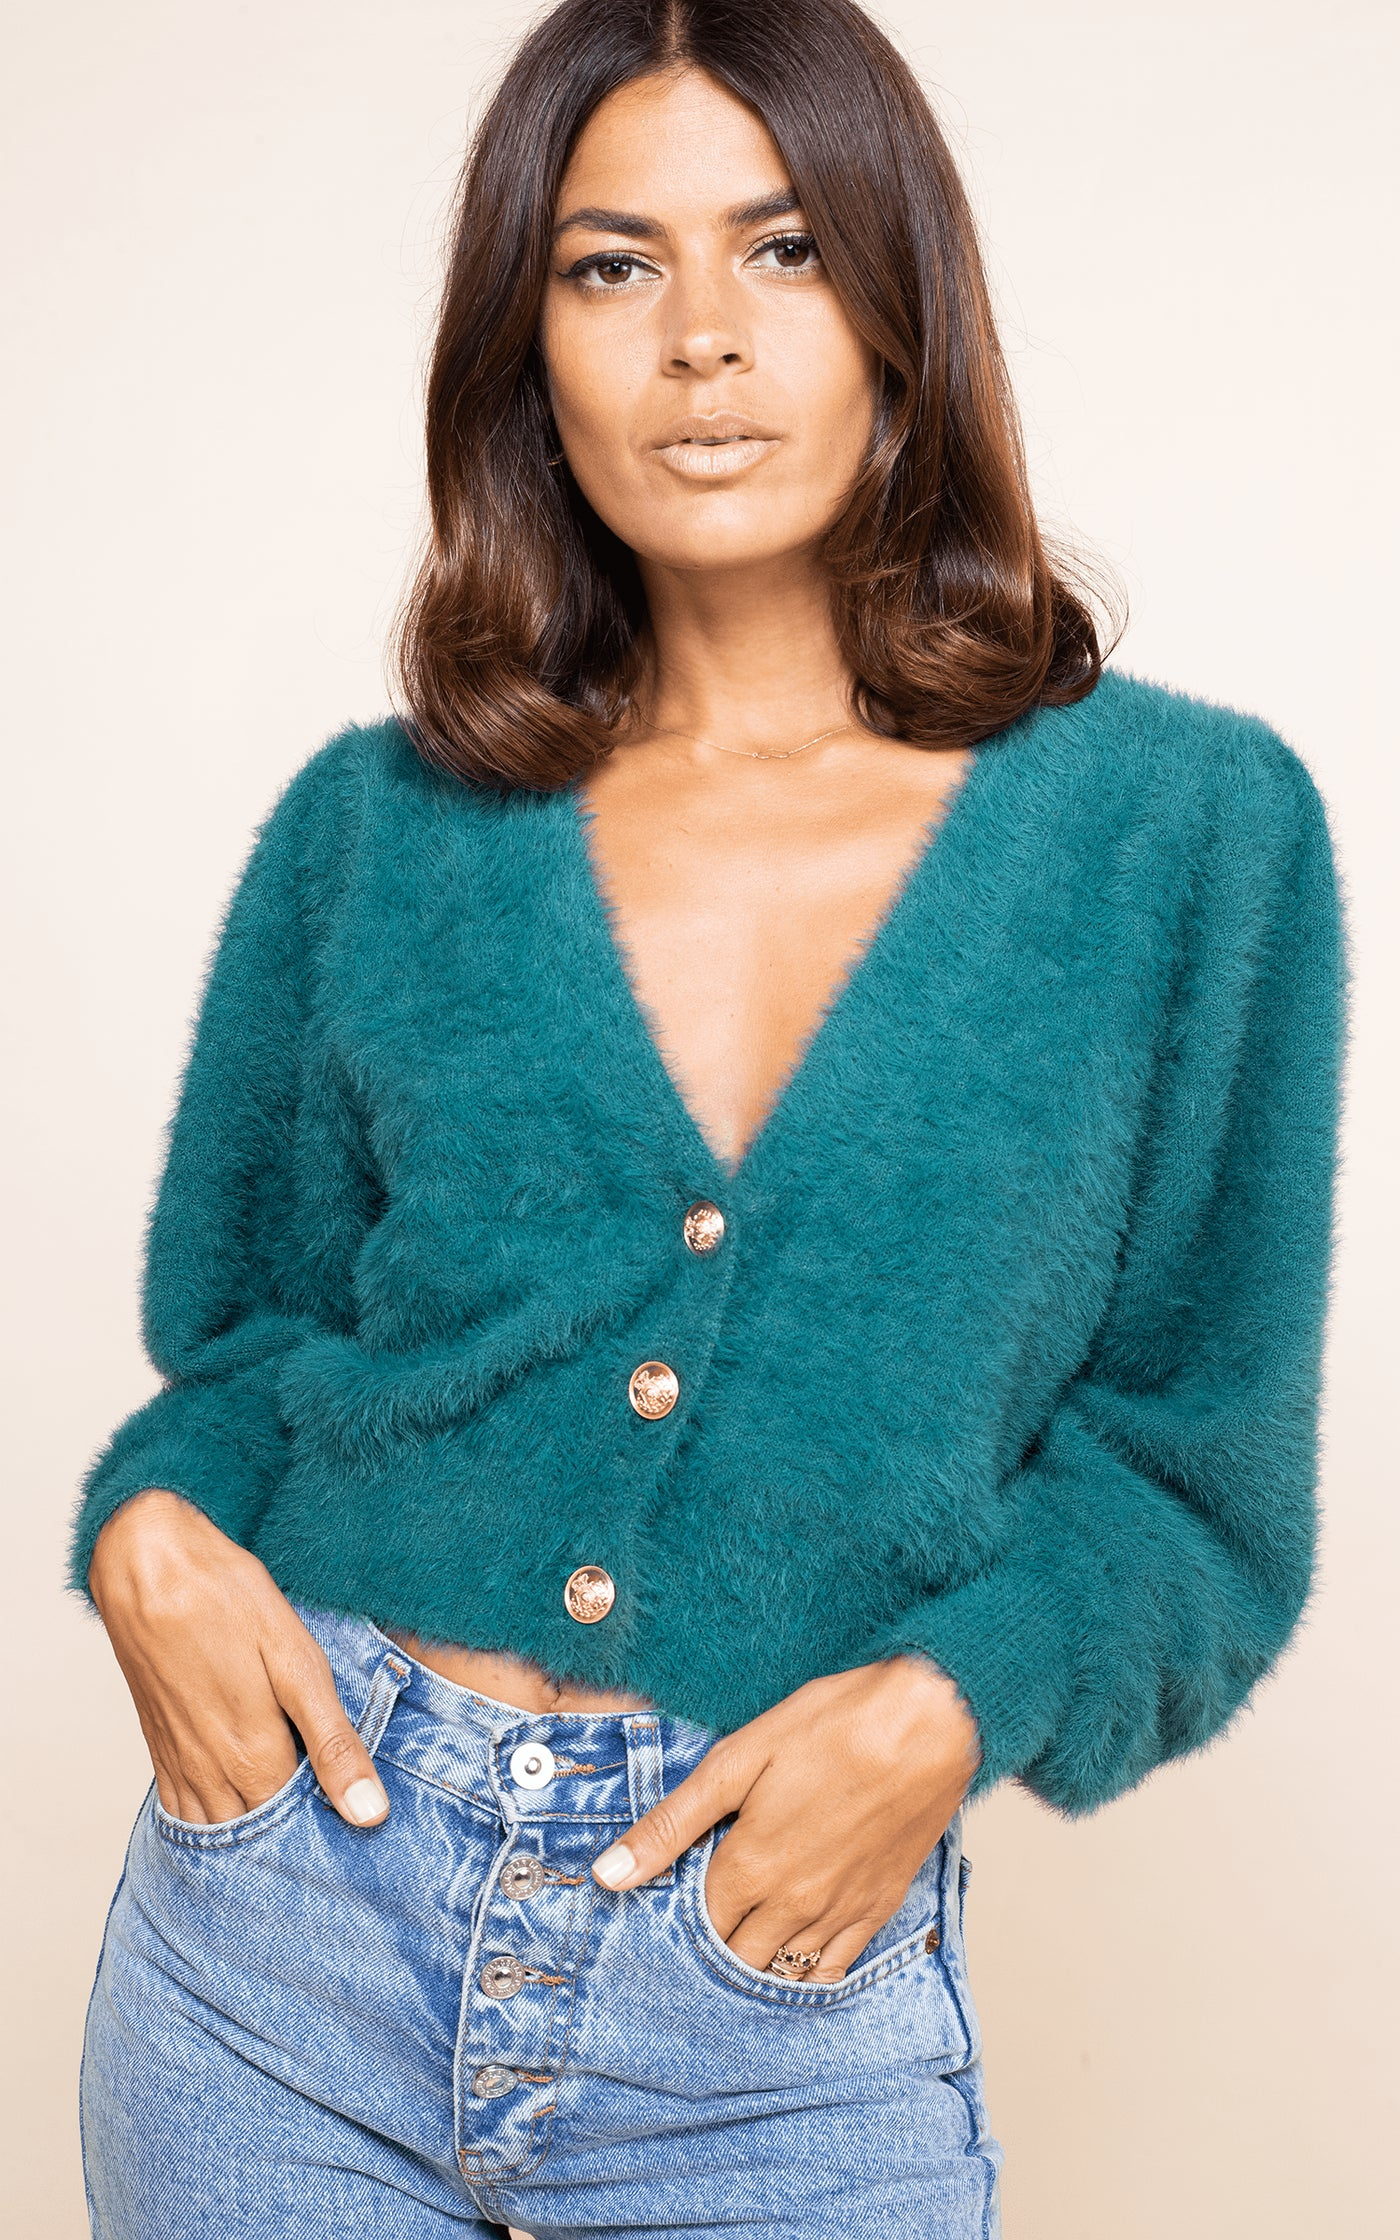 Close-up of Dancing Leopard model wearing Ariana Cardigan in forest green with jeans